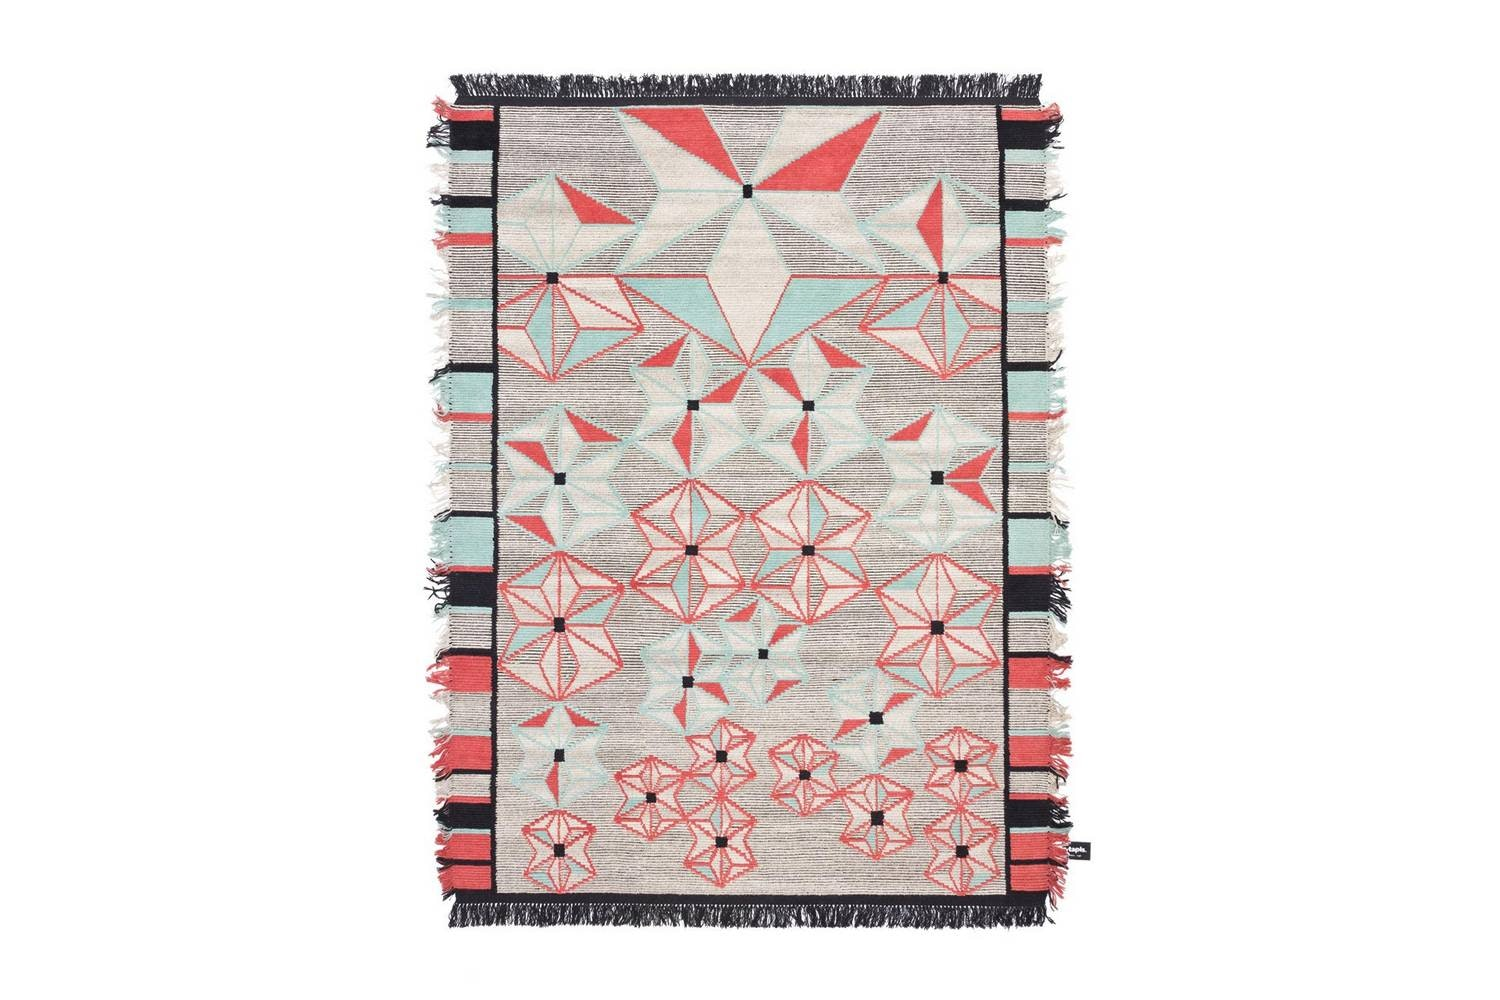 Nomad 2.0 Rug by Oldie Collection for CC-Tapis